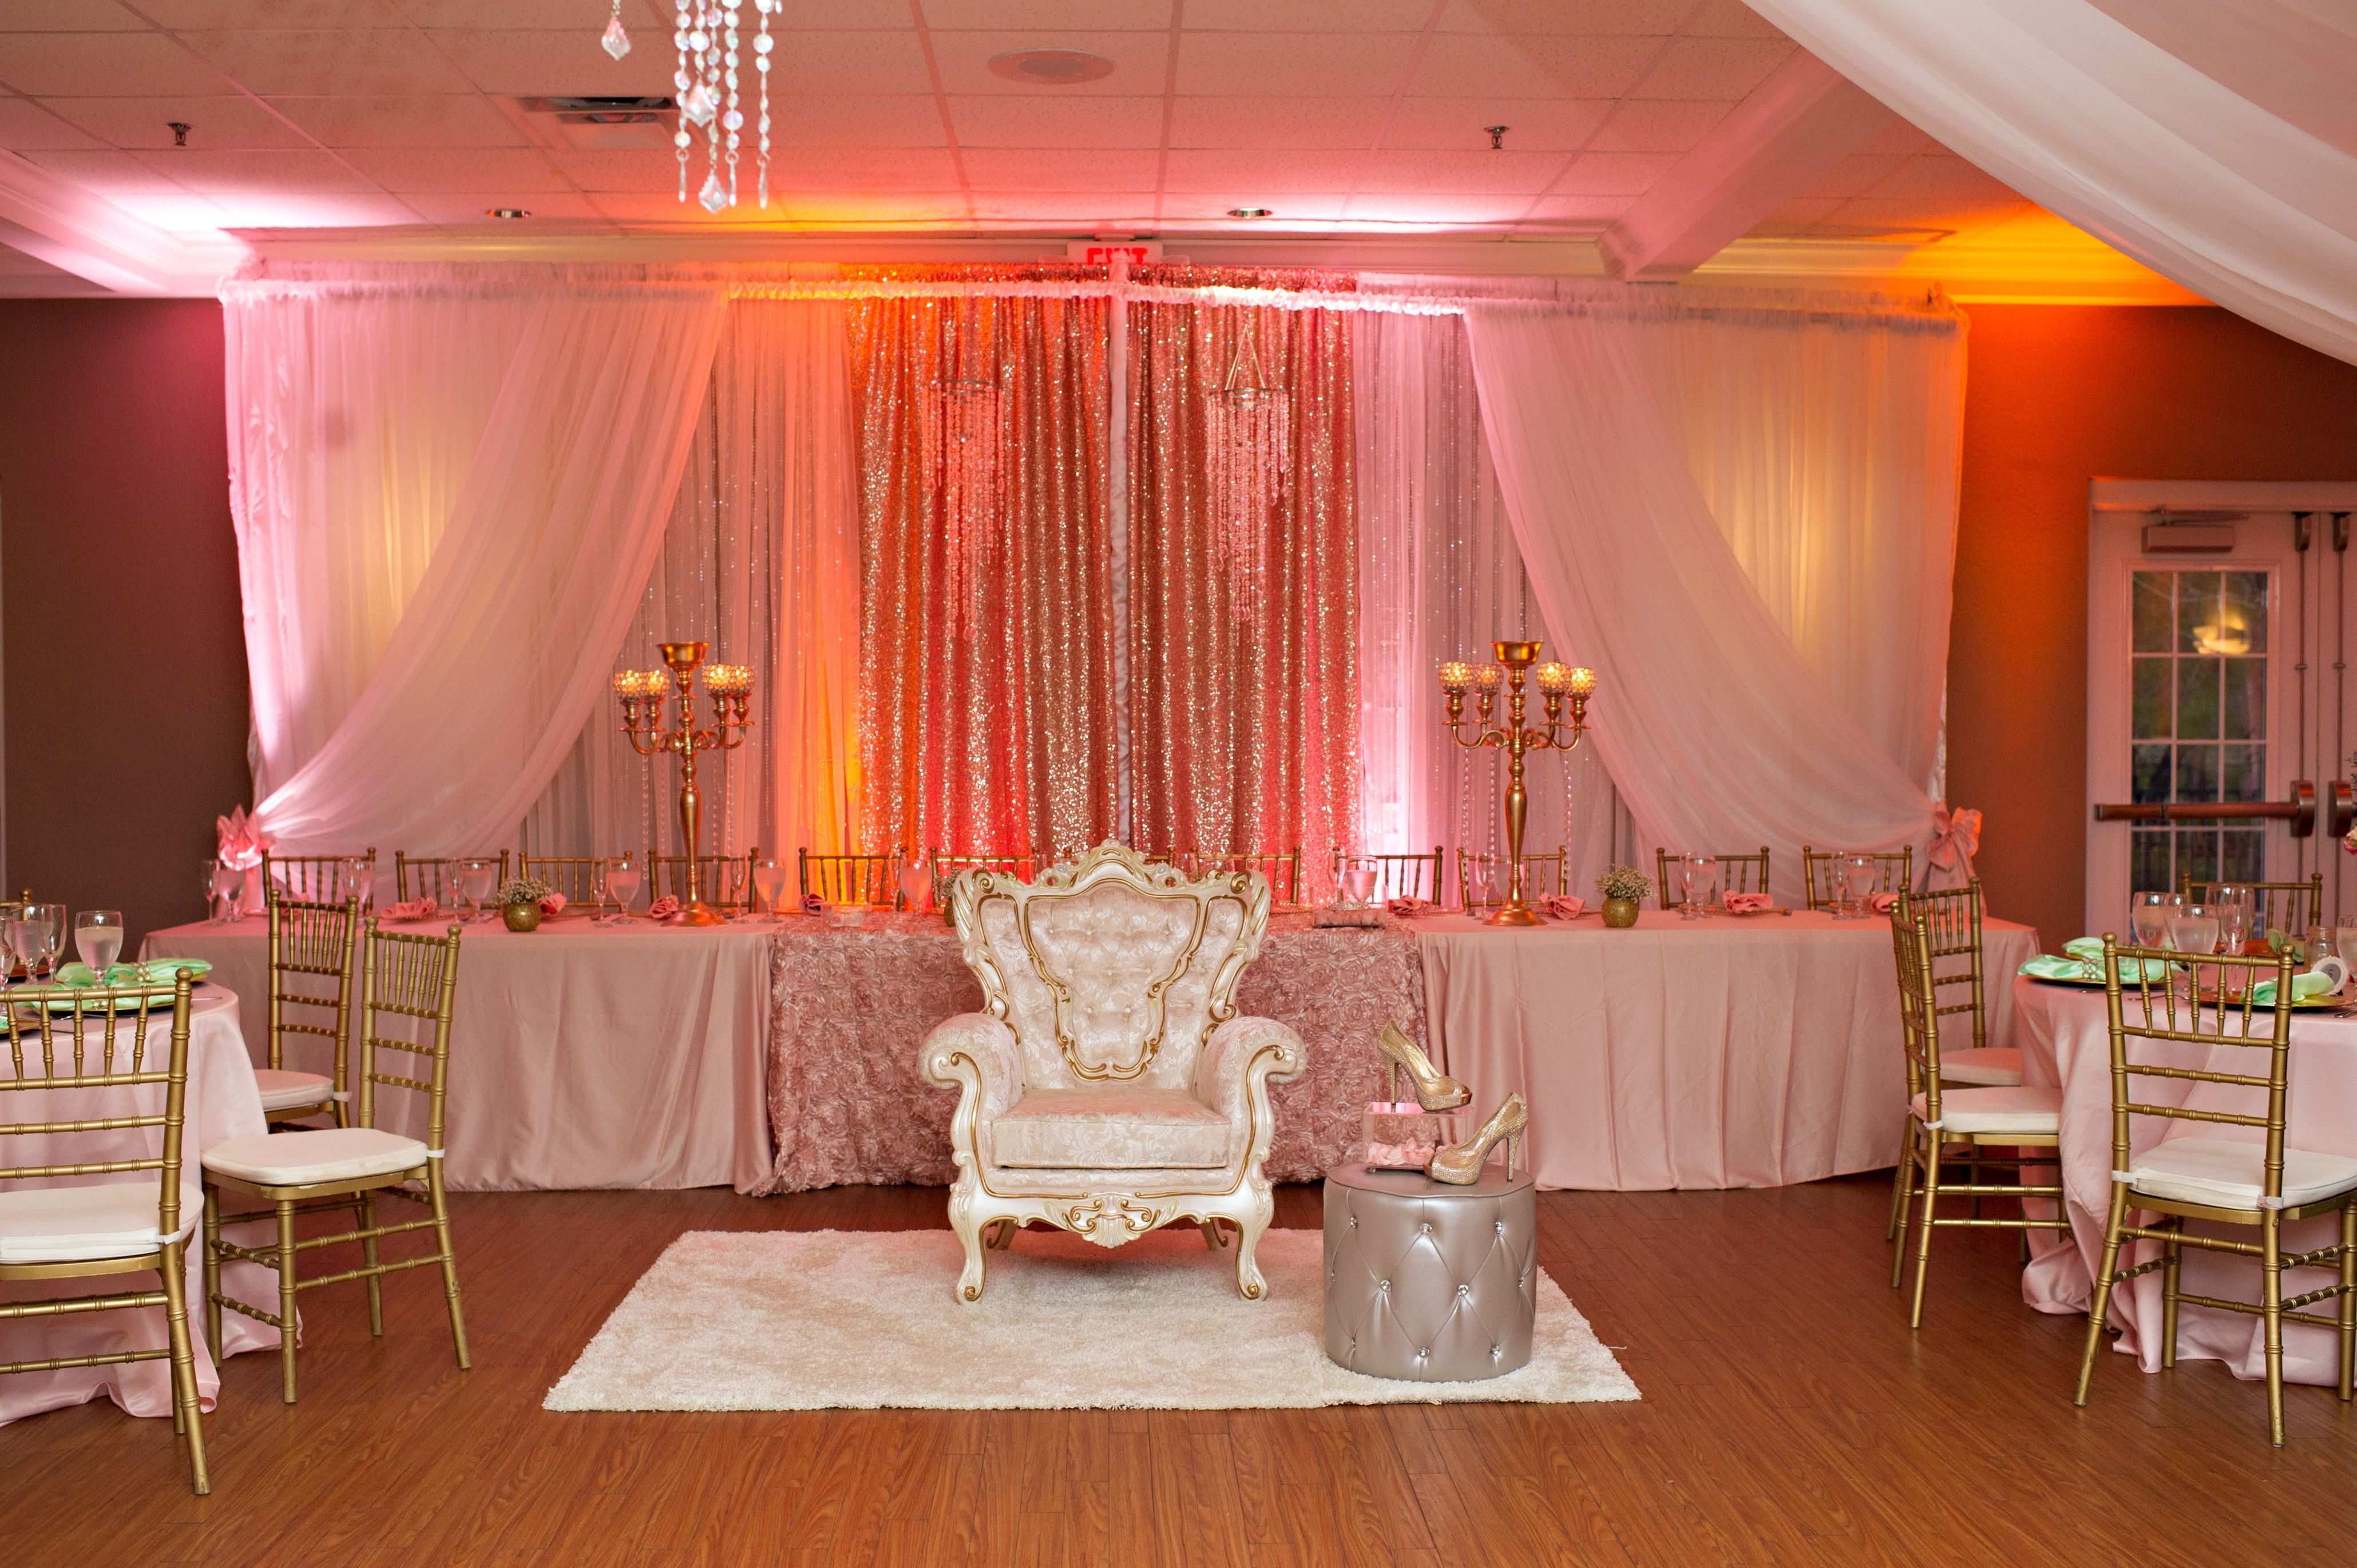 quince pictures sweet 15 pictures quince pink decorations